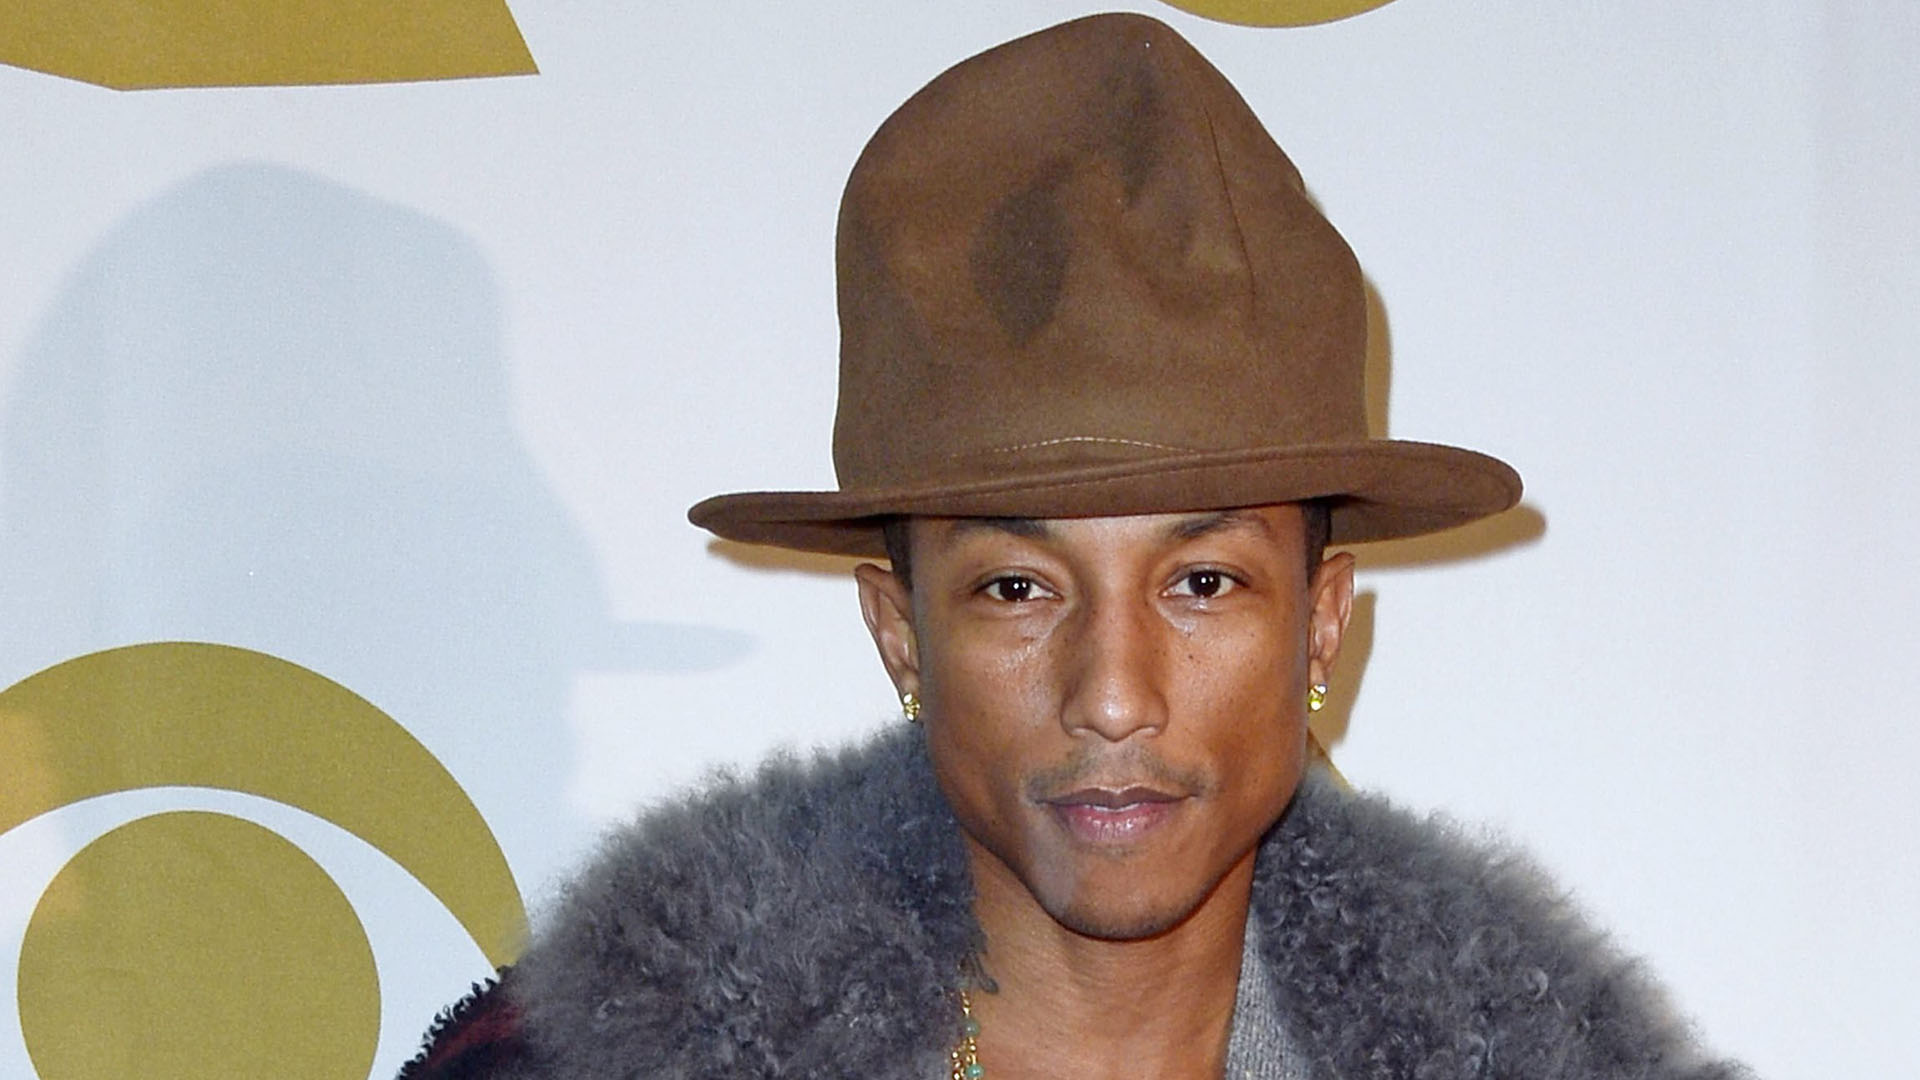 d21284557f28c Arby s buys Pharrell Williams  iconic hat for  44